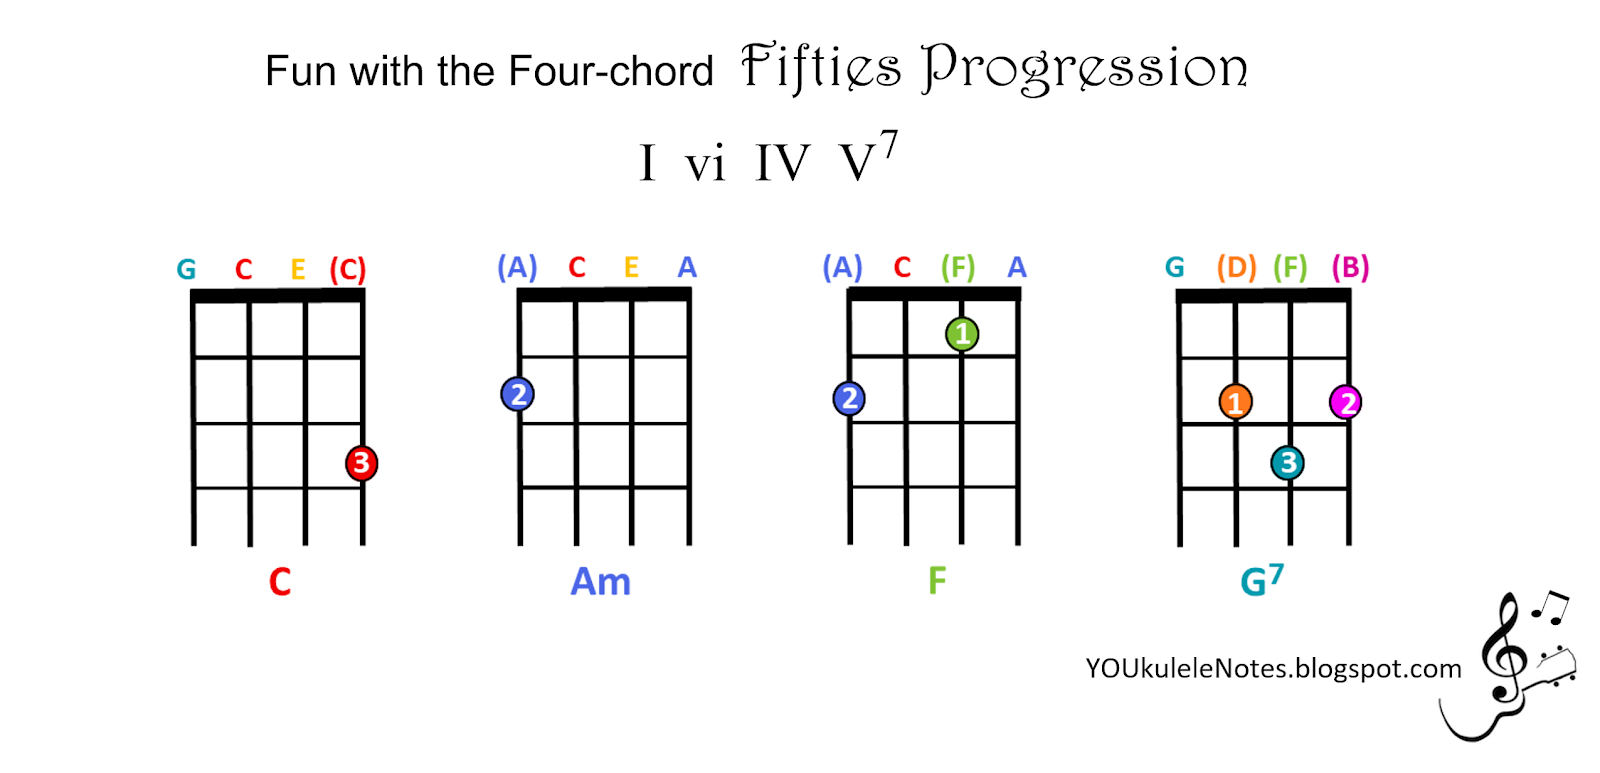 Four Chord Song Jeris Youkulele Notes Four Chord Fun With The Fifties Progression